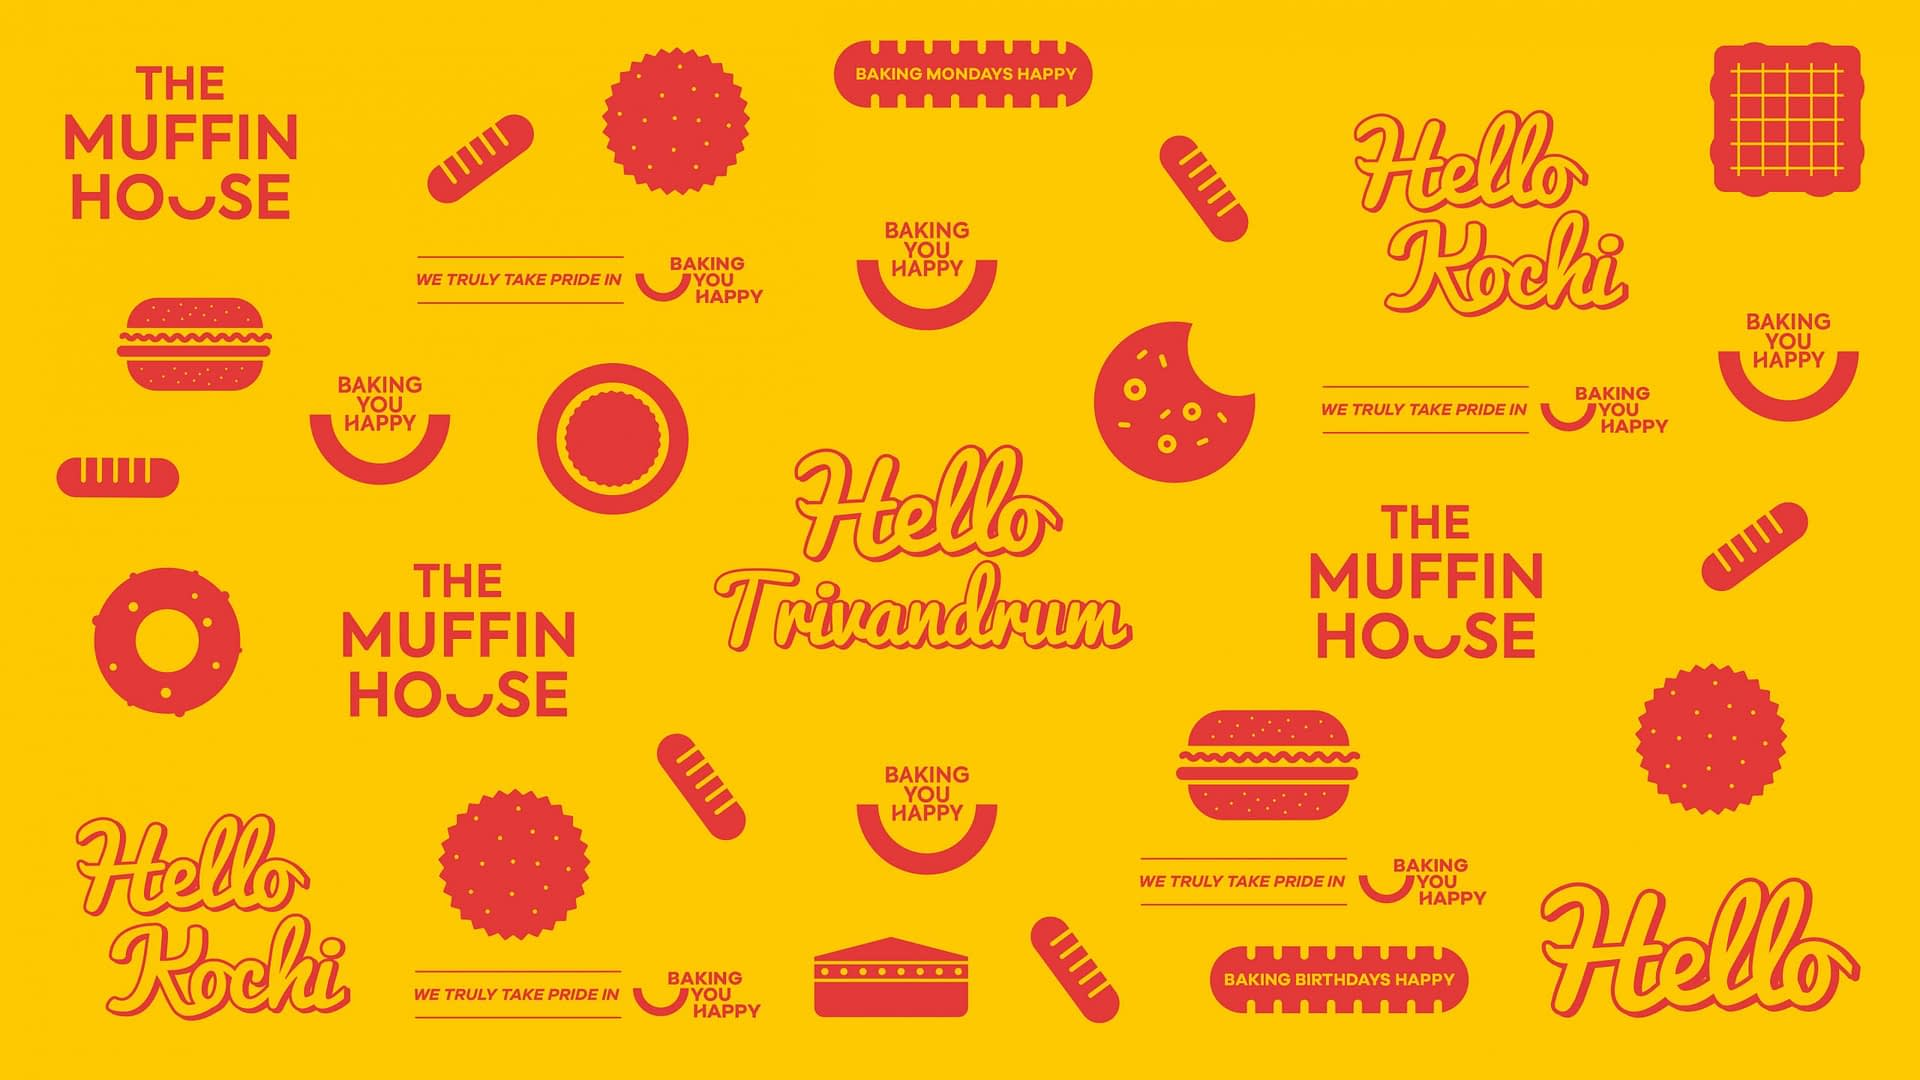 THE MUFFIN HOUSE TABLE MAT BRANDING 2